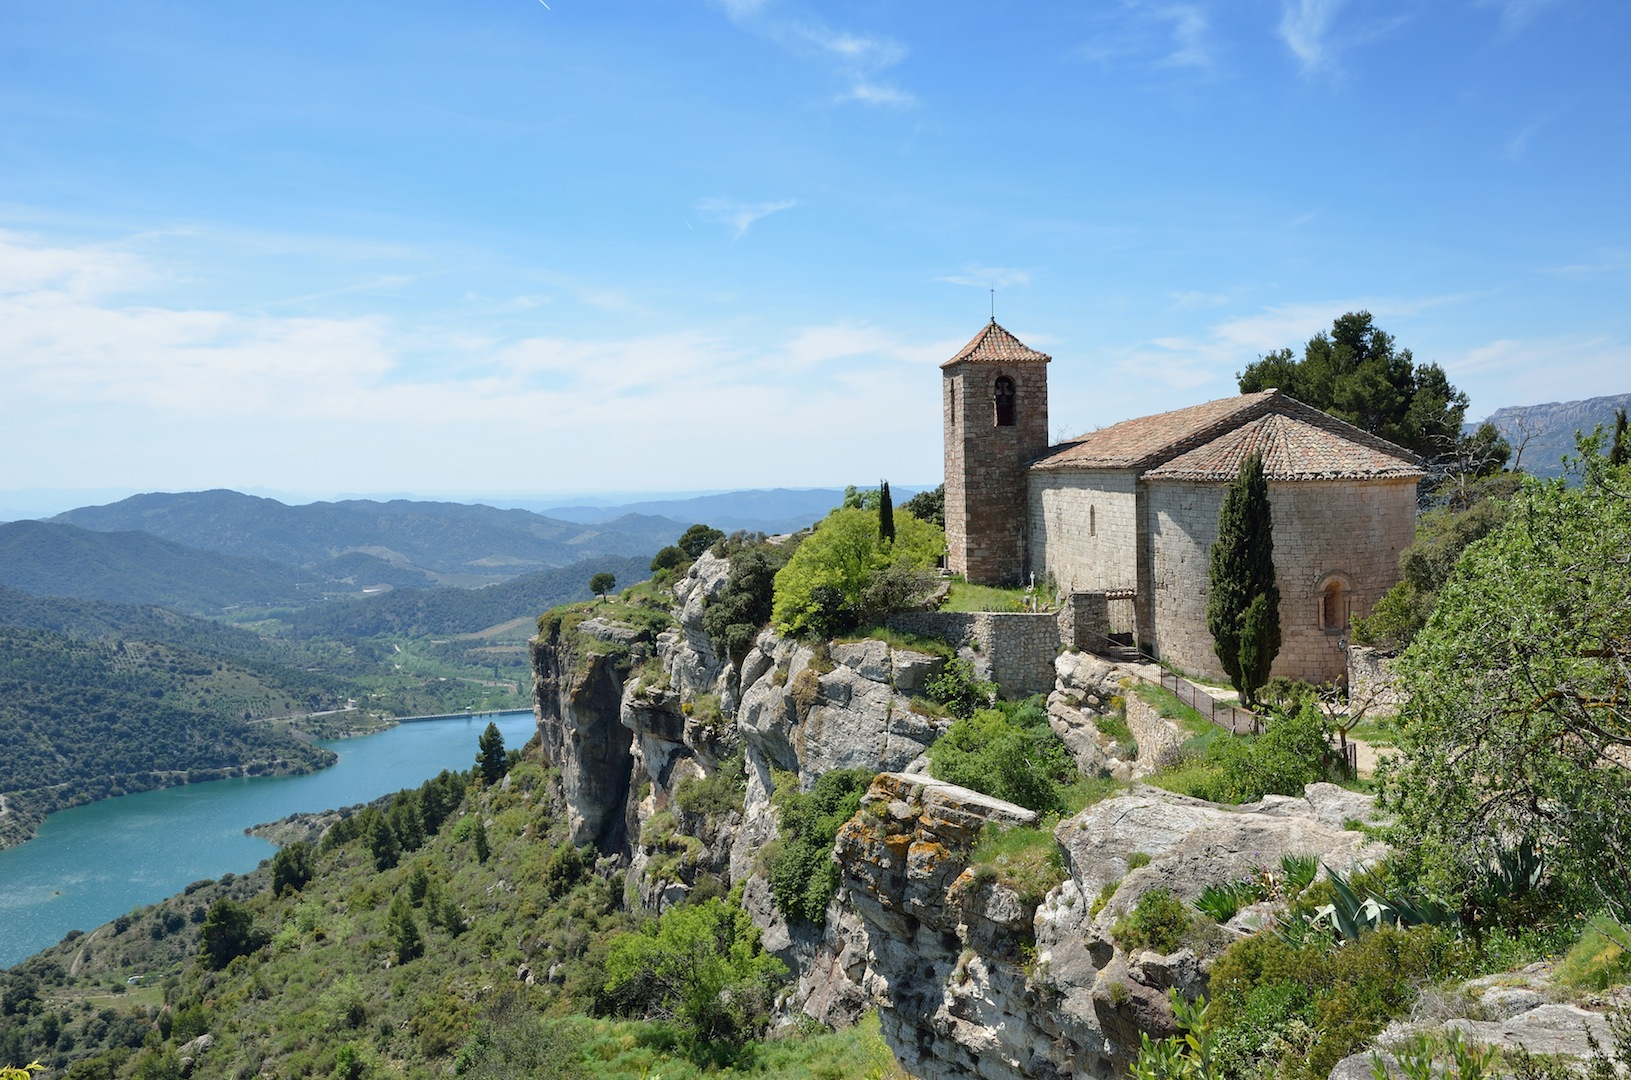 The antique church is extant in the old small village on the bluff cliff under the valley in the Prades Mountains.